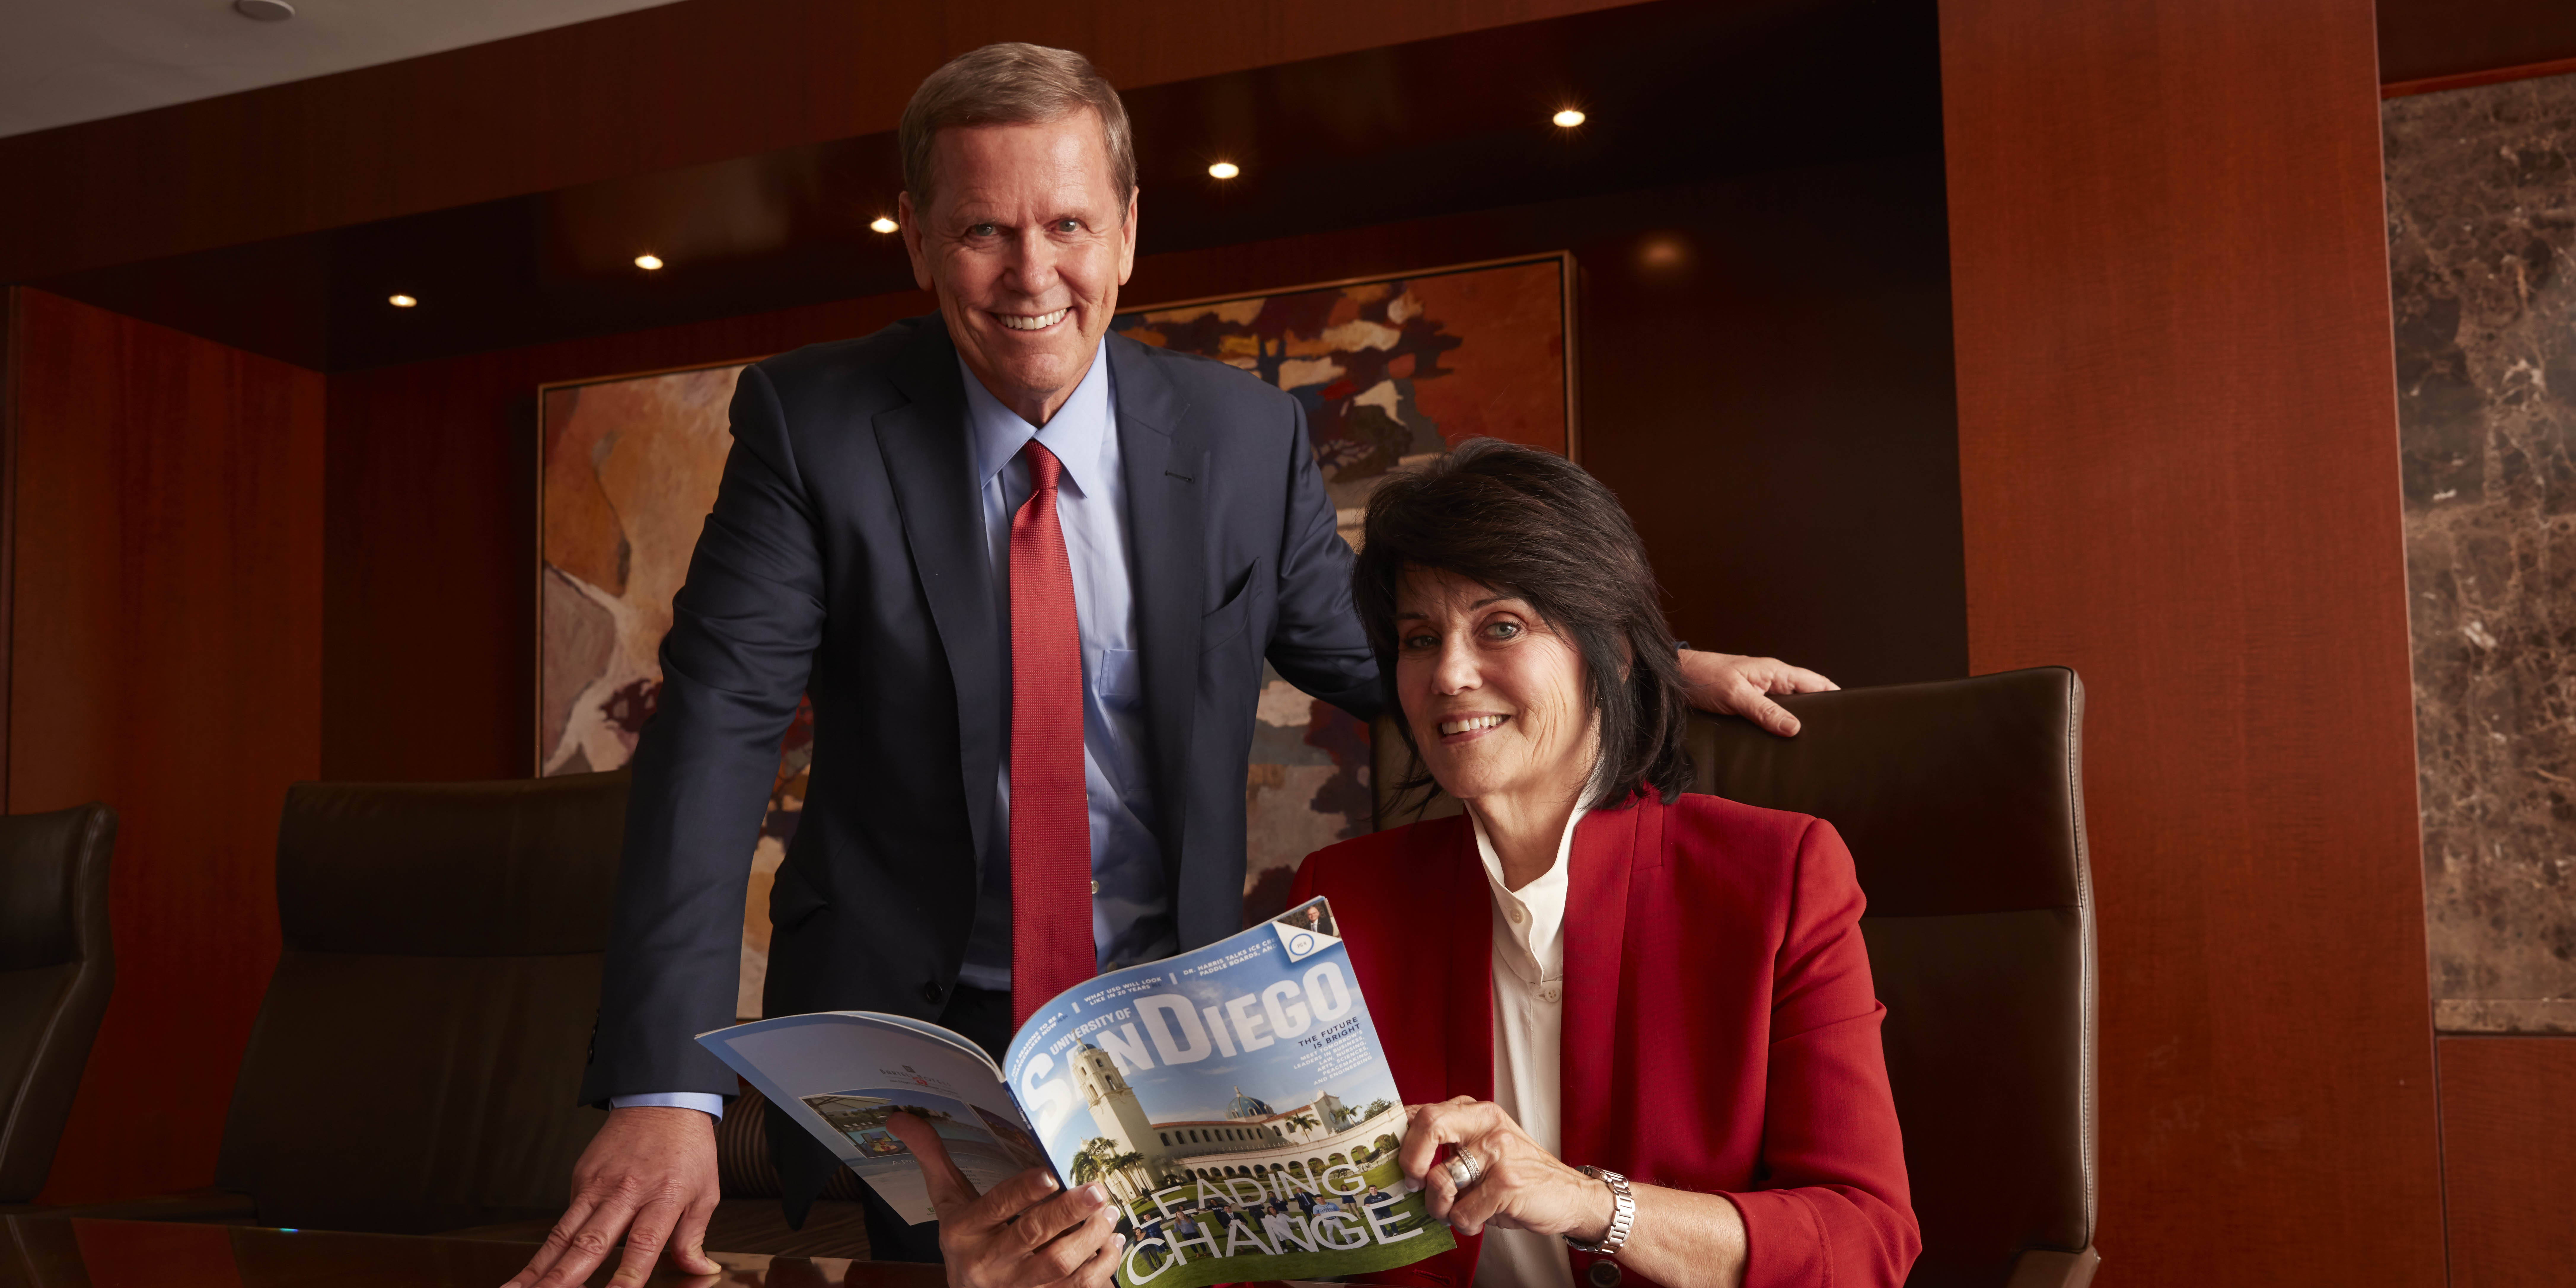 USD School of Law alums David Casey '74 (JD) and Virginia Nelson '79 (JD)